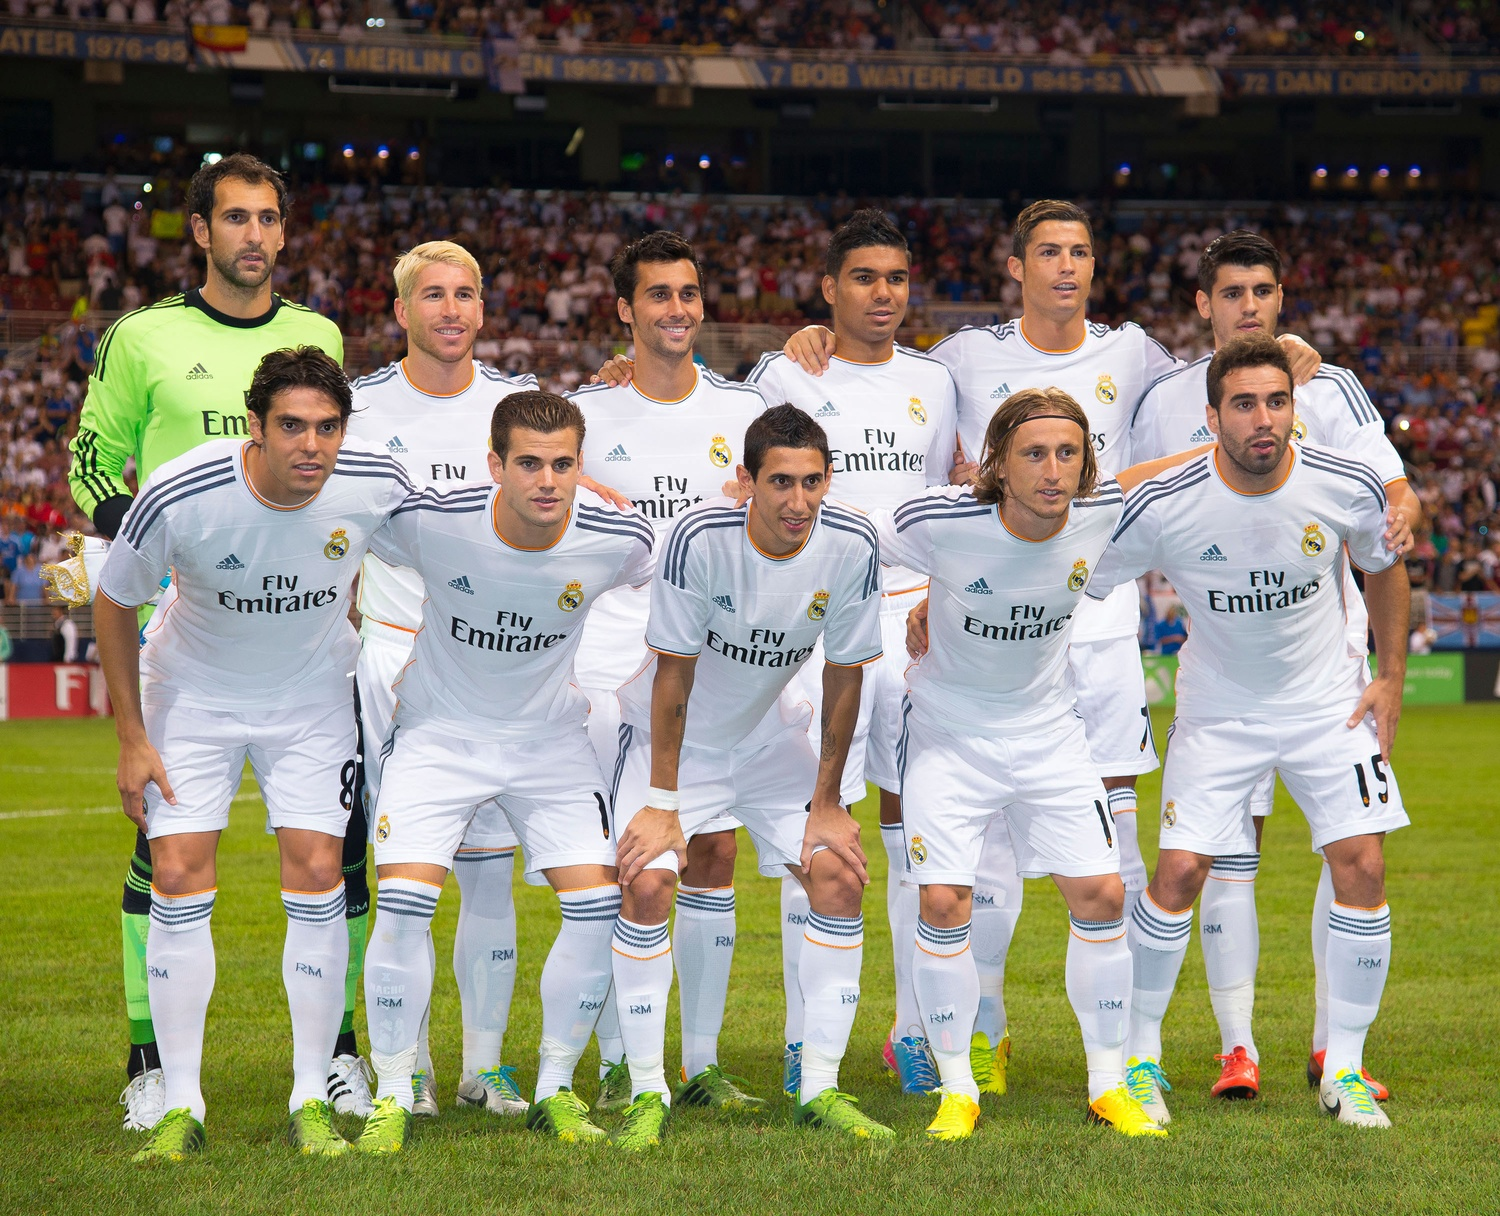 Real Madrid Team 2014 - 1500x1216 - Download HD Wallpaper -